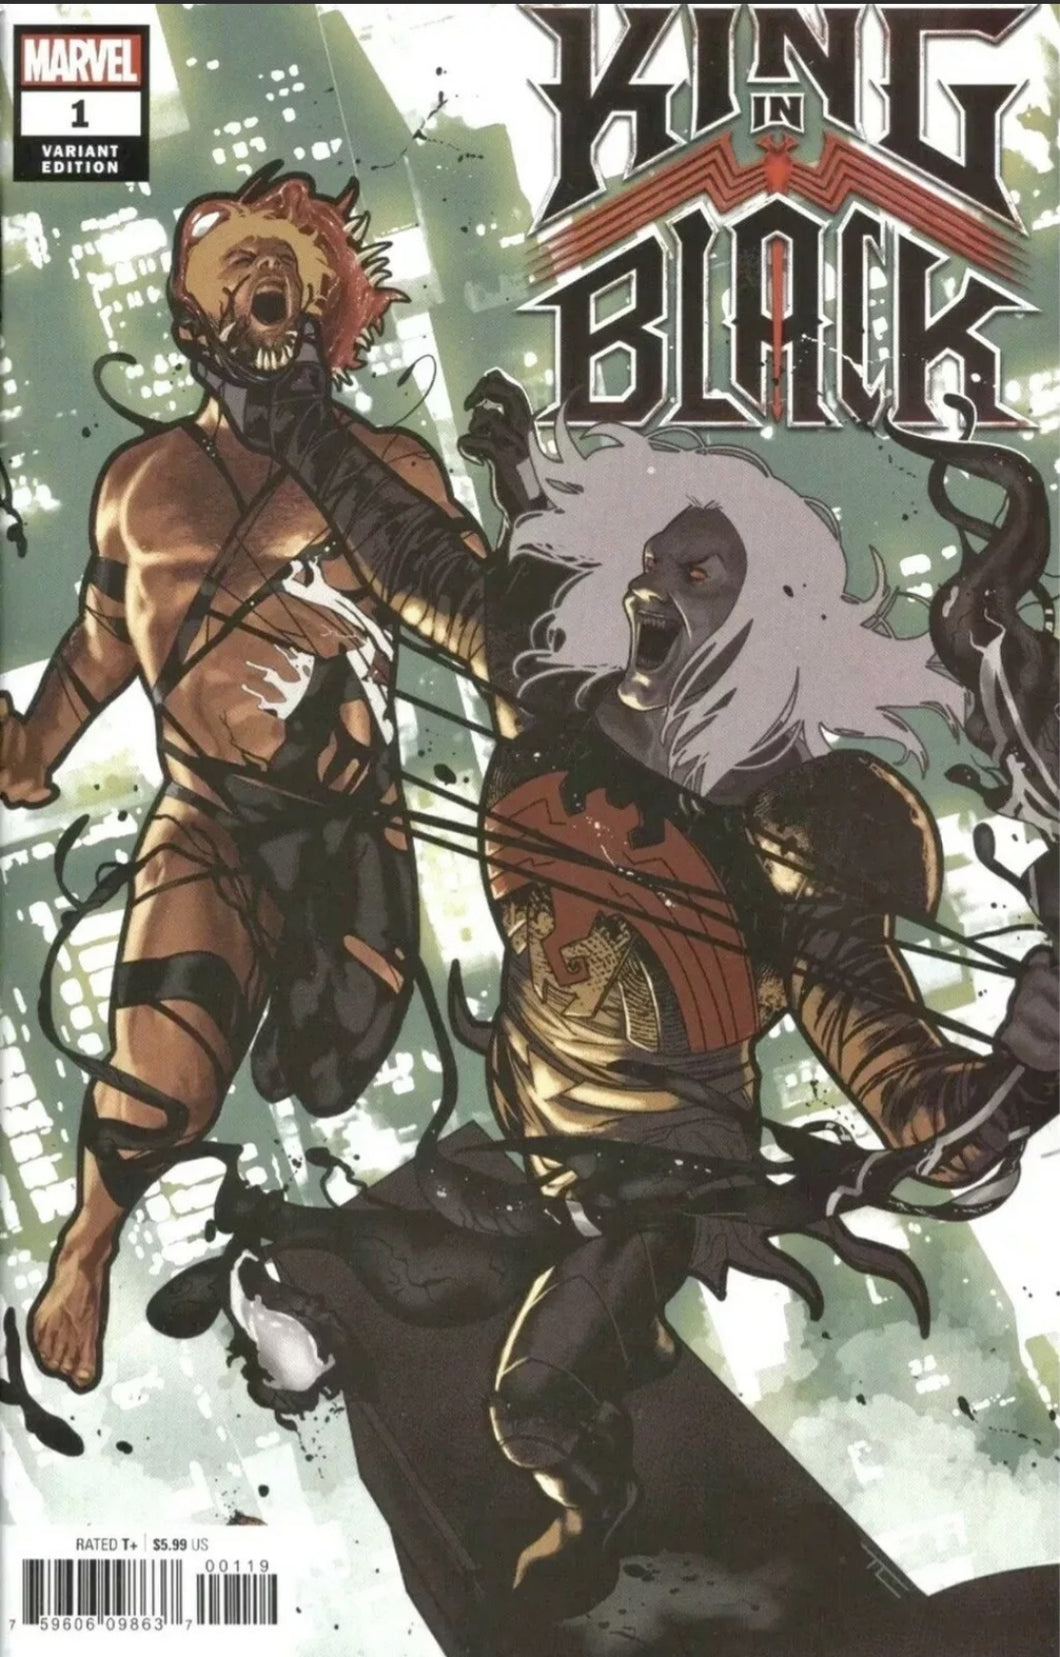 KING IN BLACK #1 Spoiler Variant Marvel NM Donny Cates